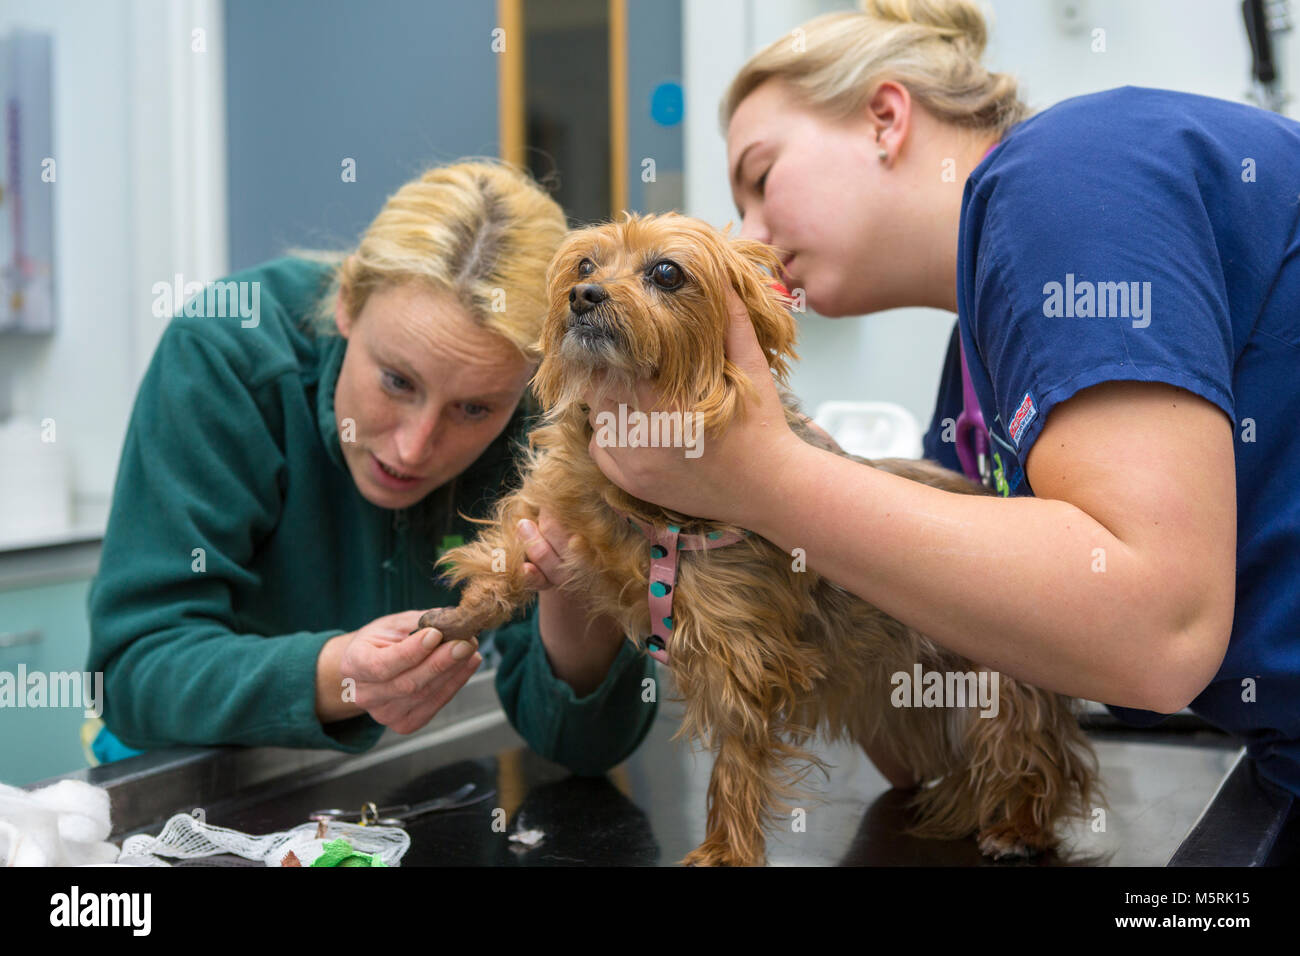 Veterinary surgeon checks the foot of a small dog in a veterinary surgery - Stock Image